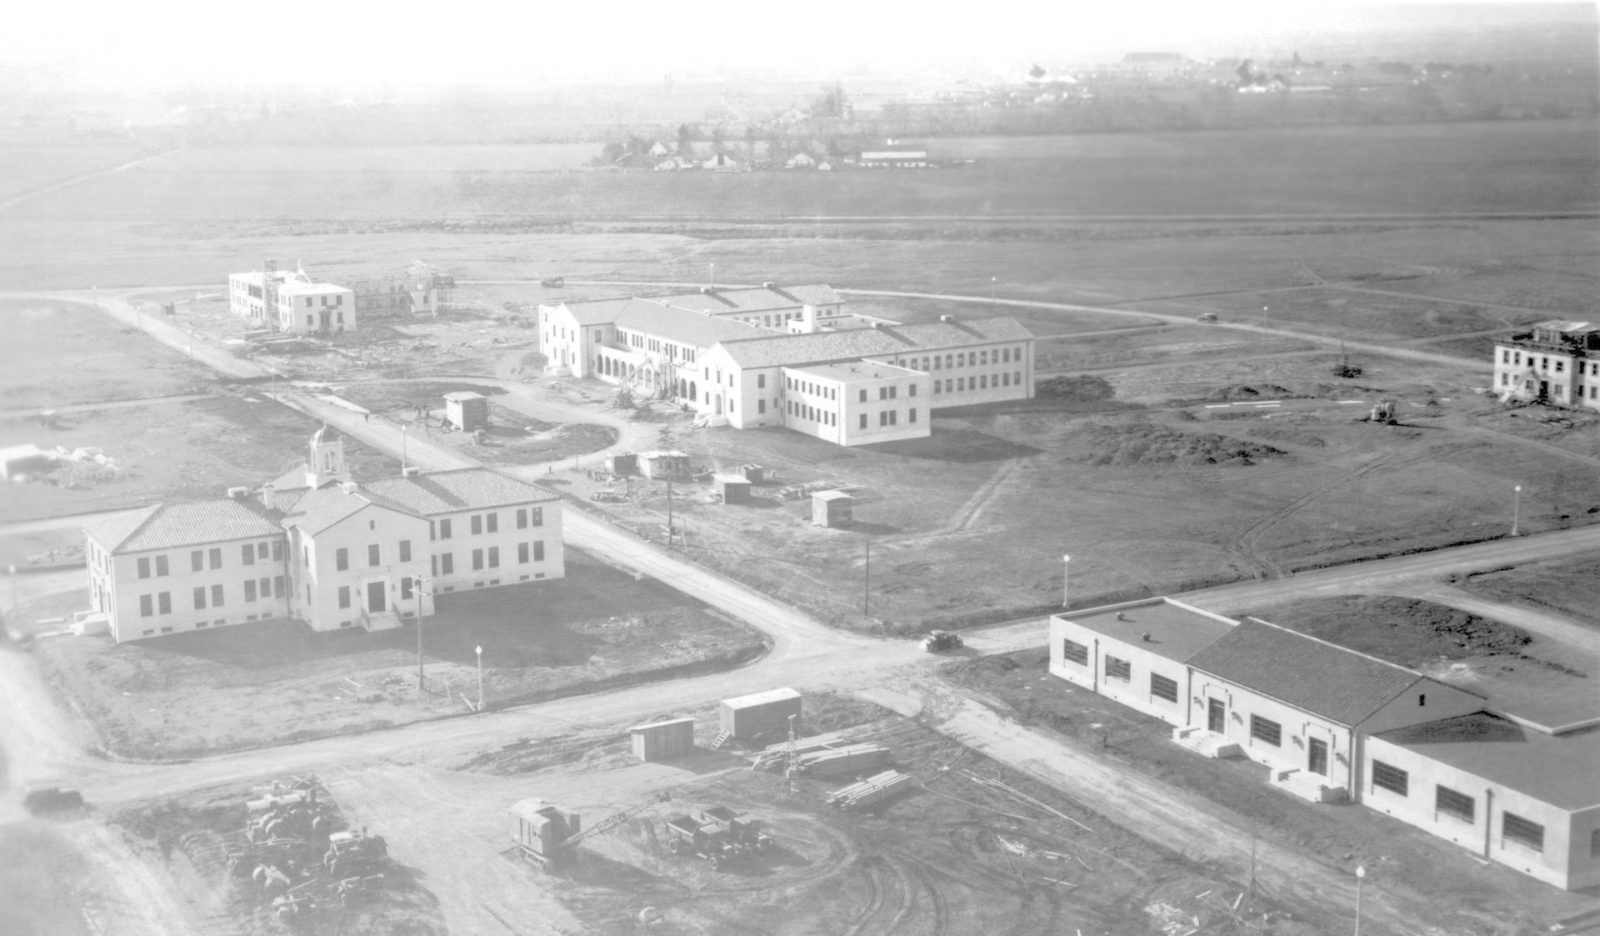 Construction  at NAS Sunnyvale later remamed NAS Moffett Field circa 1933 - 1934 photos provied from private collection with permission to use by NASA Ames Research Center ARC-1934-AD93-0073-26